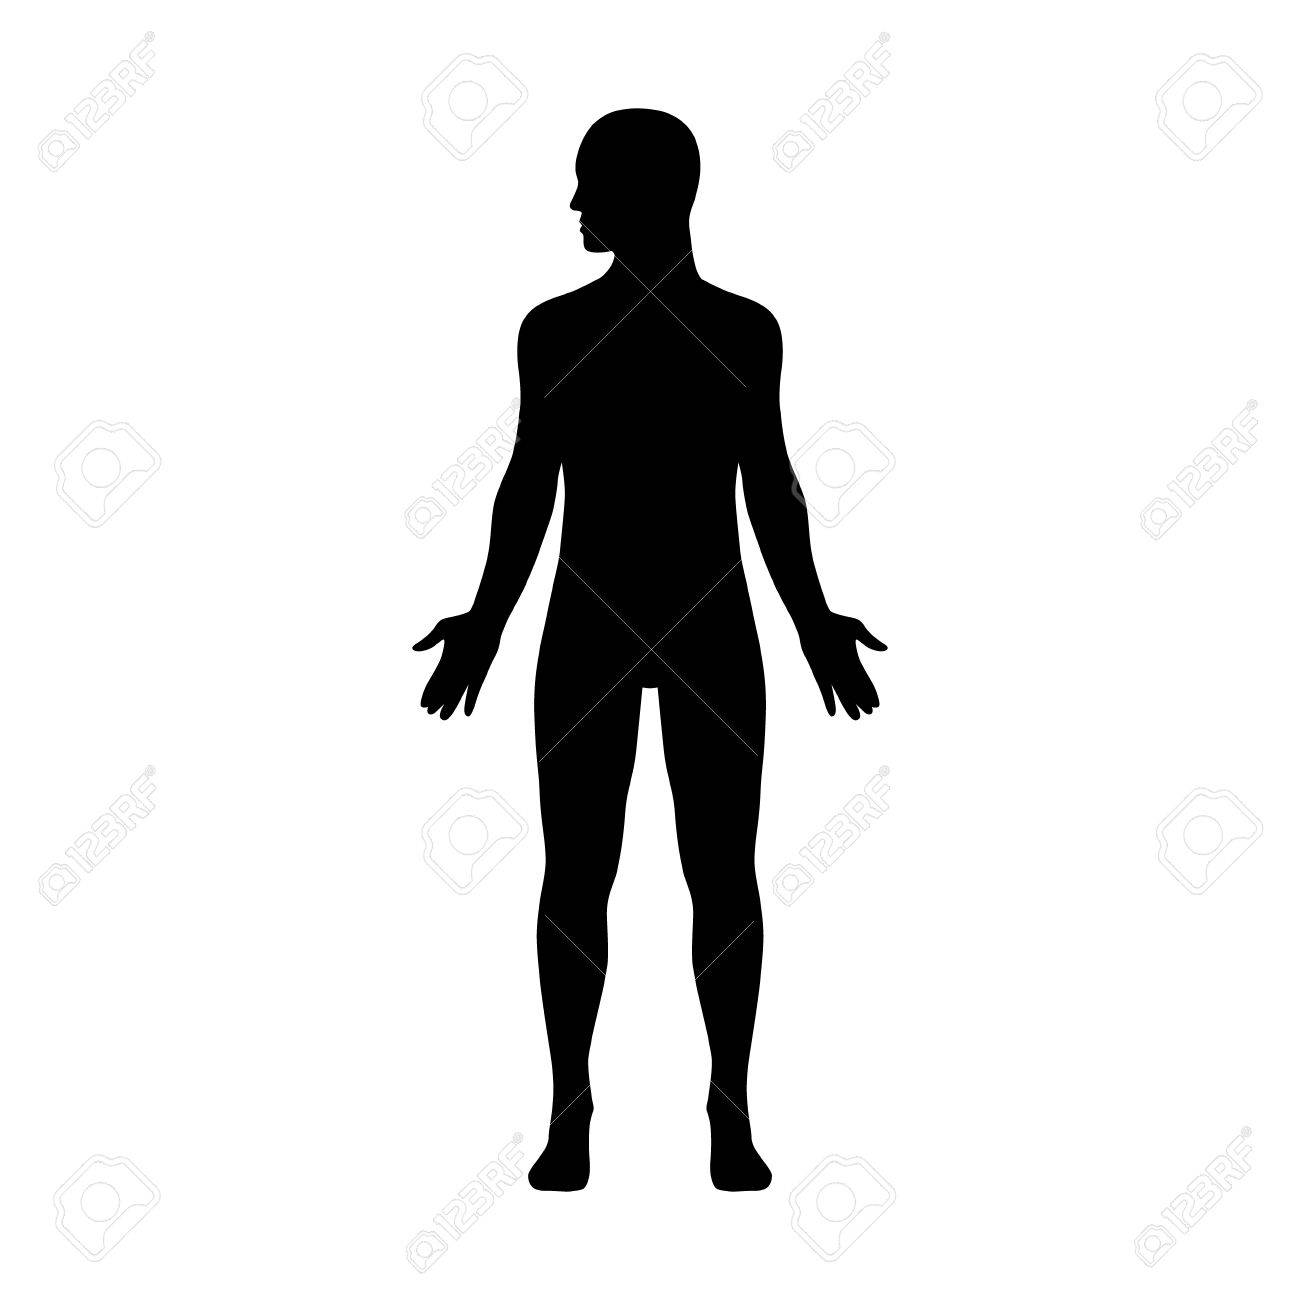 Male human body with head turned to side flat icon for apps and websites - 58944851